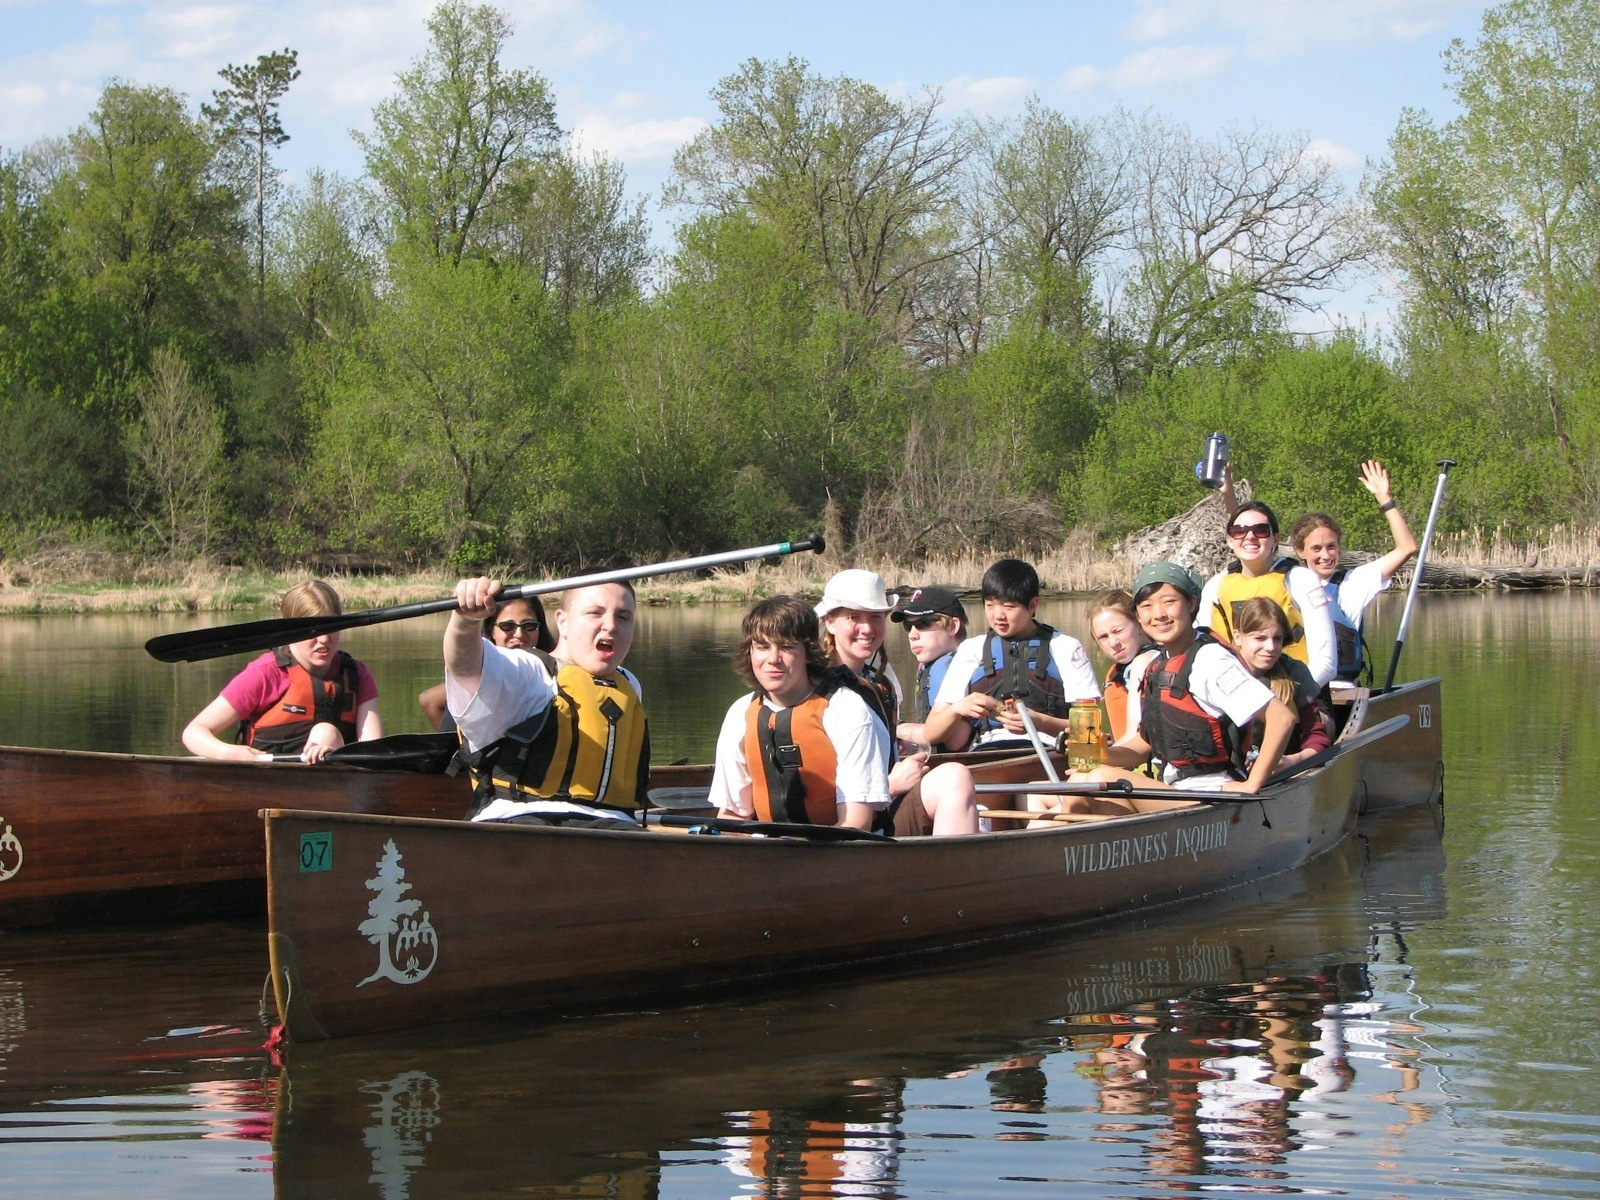 Youth in two Voyageur canoes show off their excitement for paddling with smiles and paddles raised in the air.